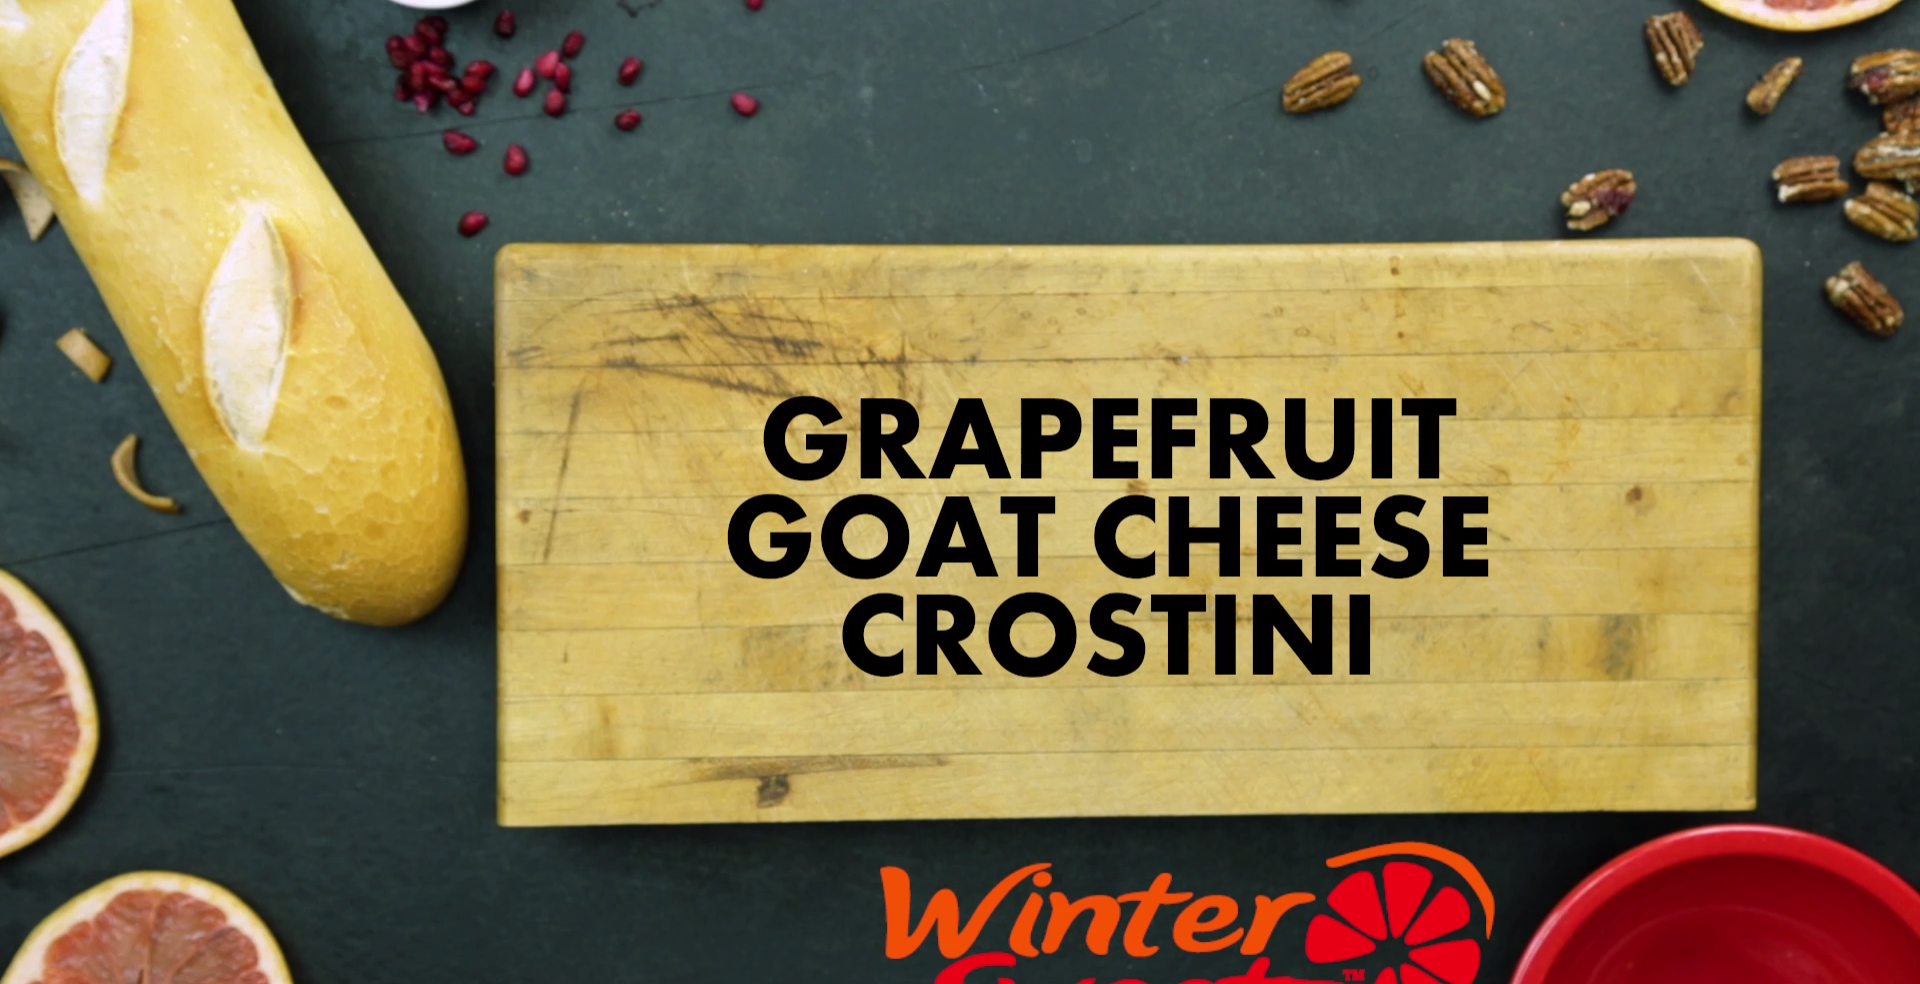 Grapefruit Goat Cheese Crostini